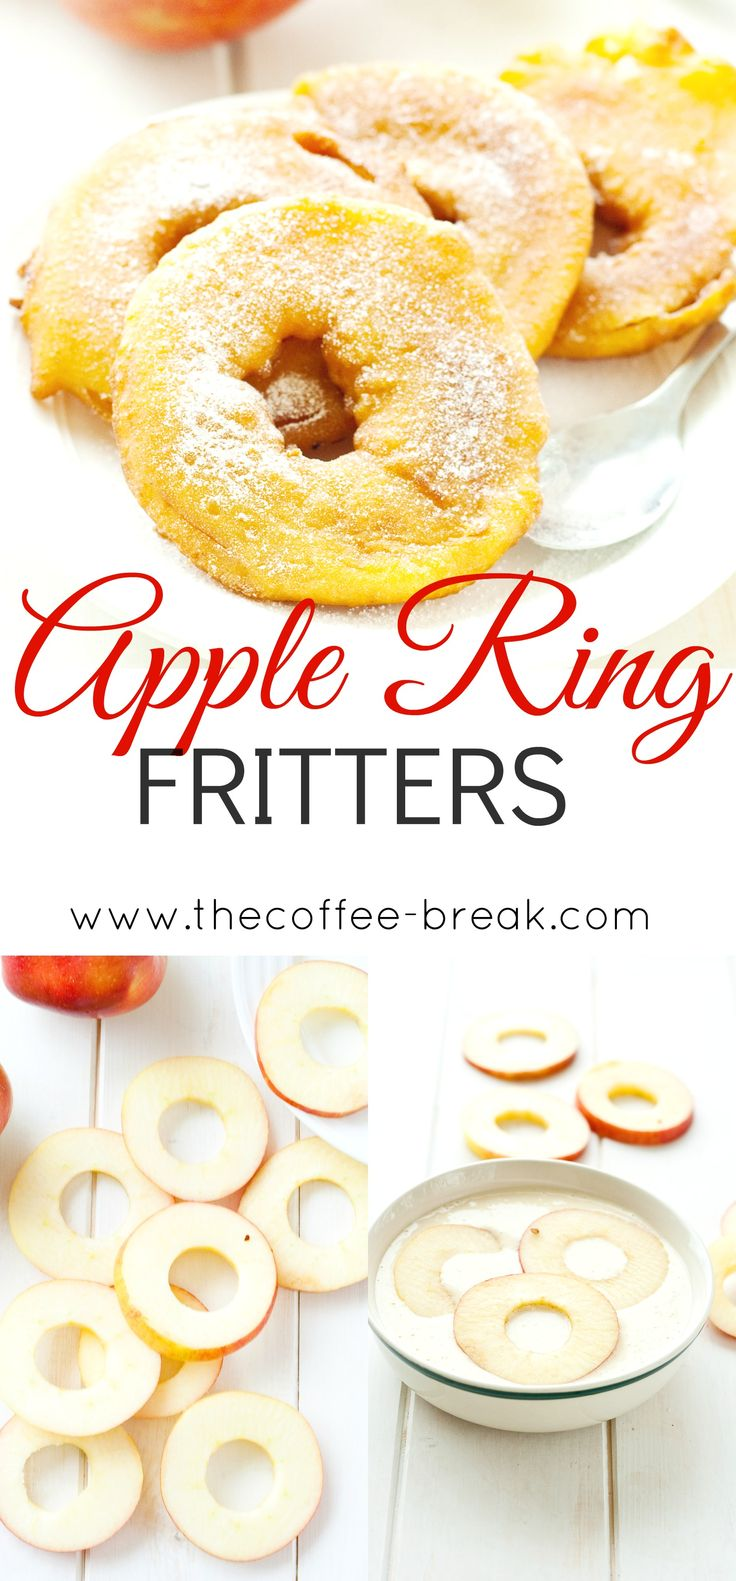 Apple Ring Fritters    www.thecoffee-break.com #applefritters #treat #apples